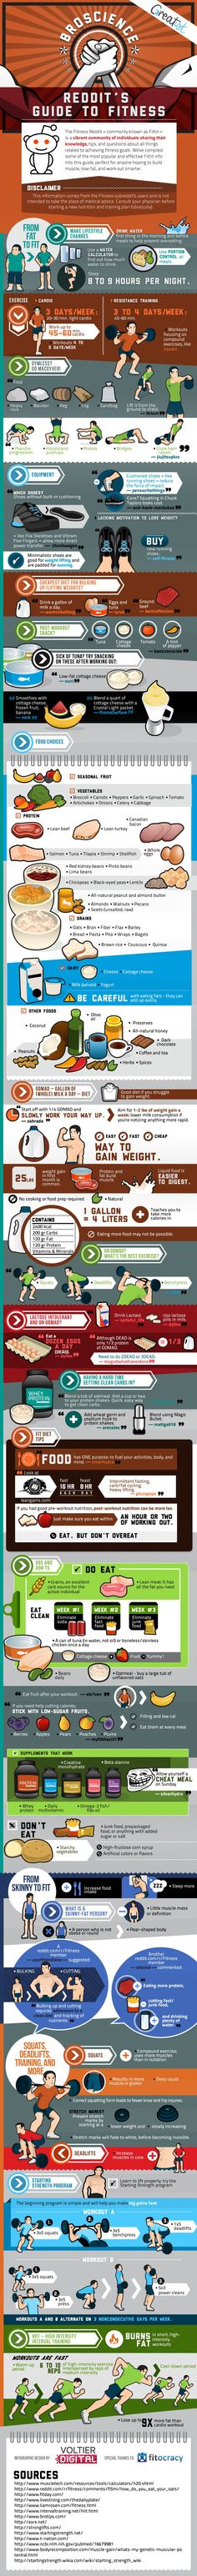 Guide To Fit – Infographic List